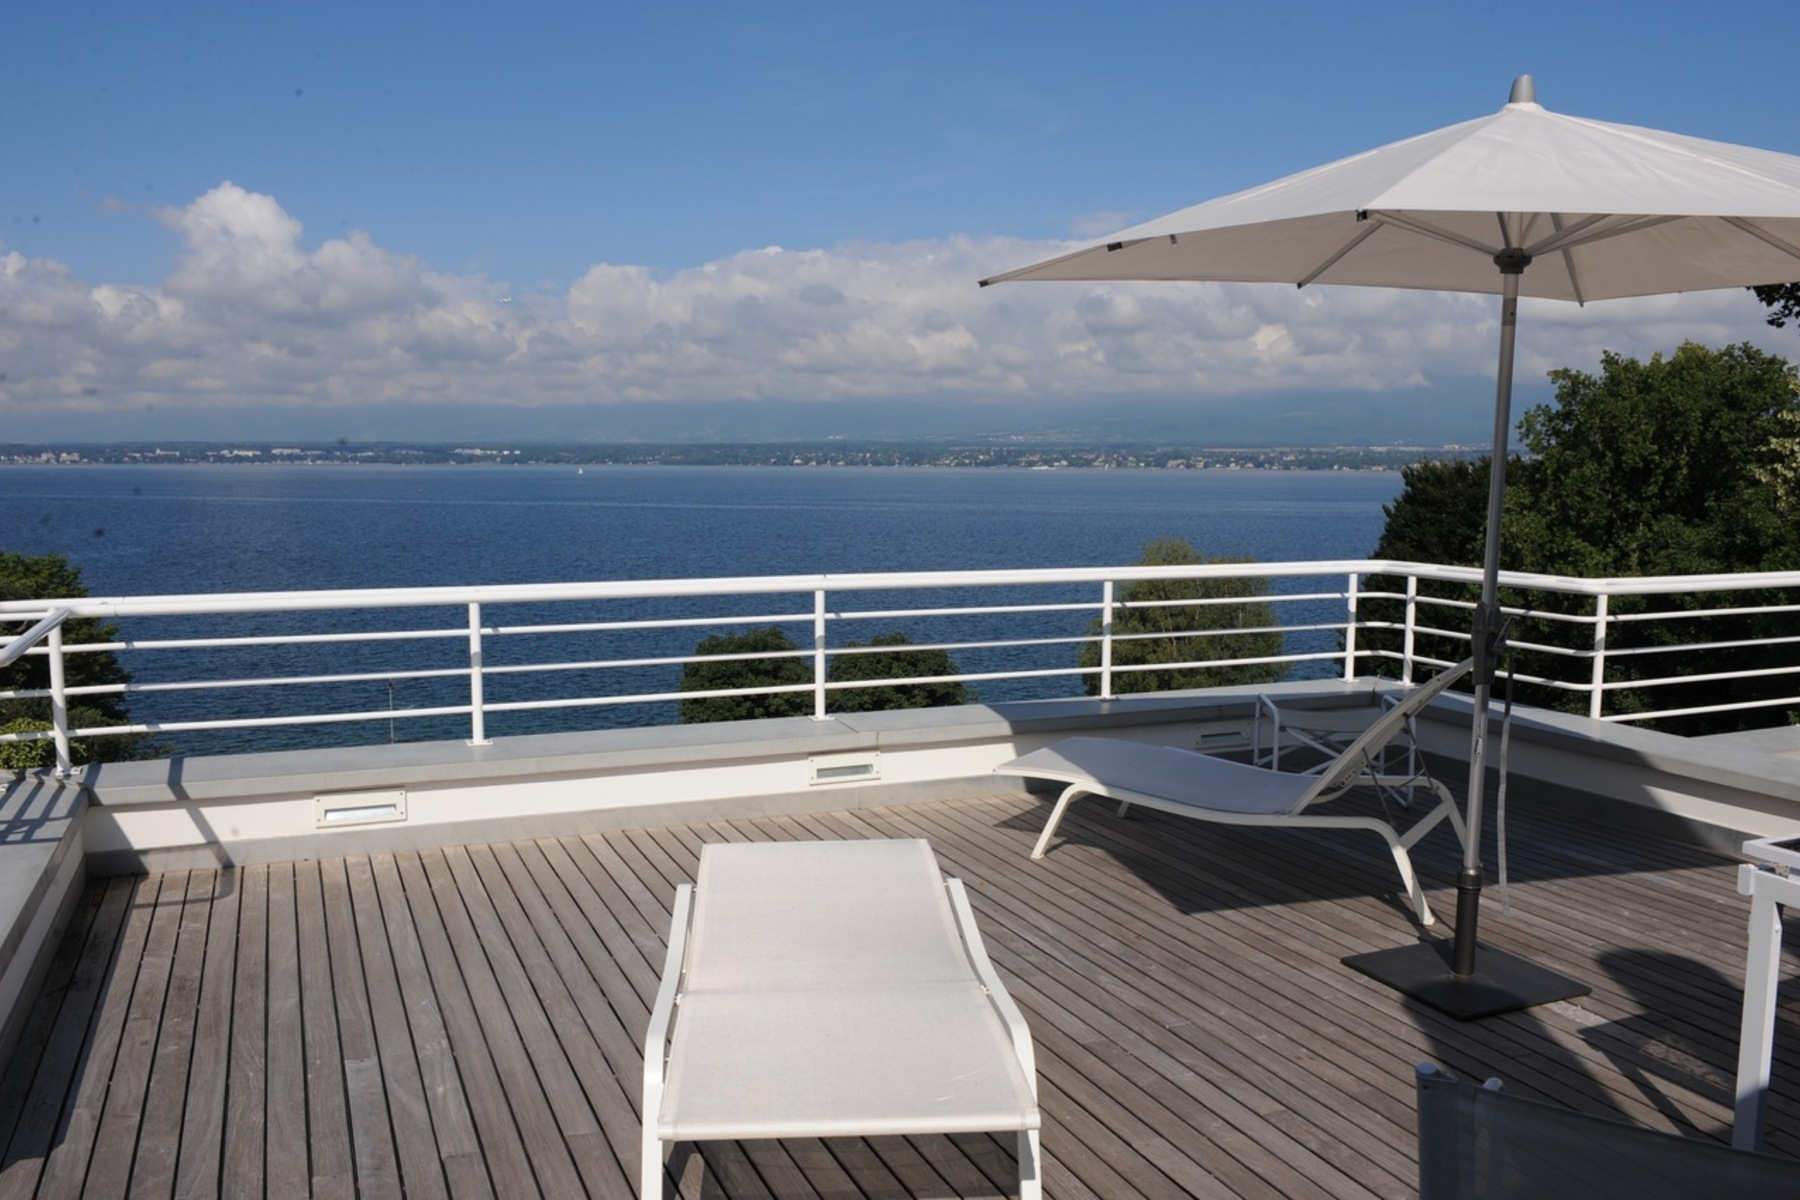 Property For Sale at Magnificent contemporary villa with unobstructed views of the lake